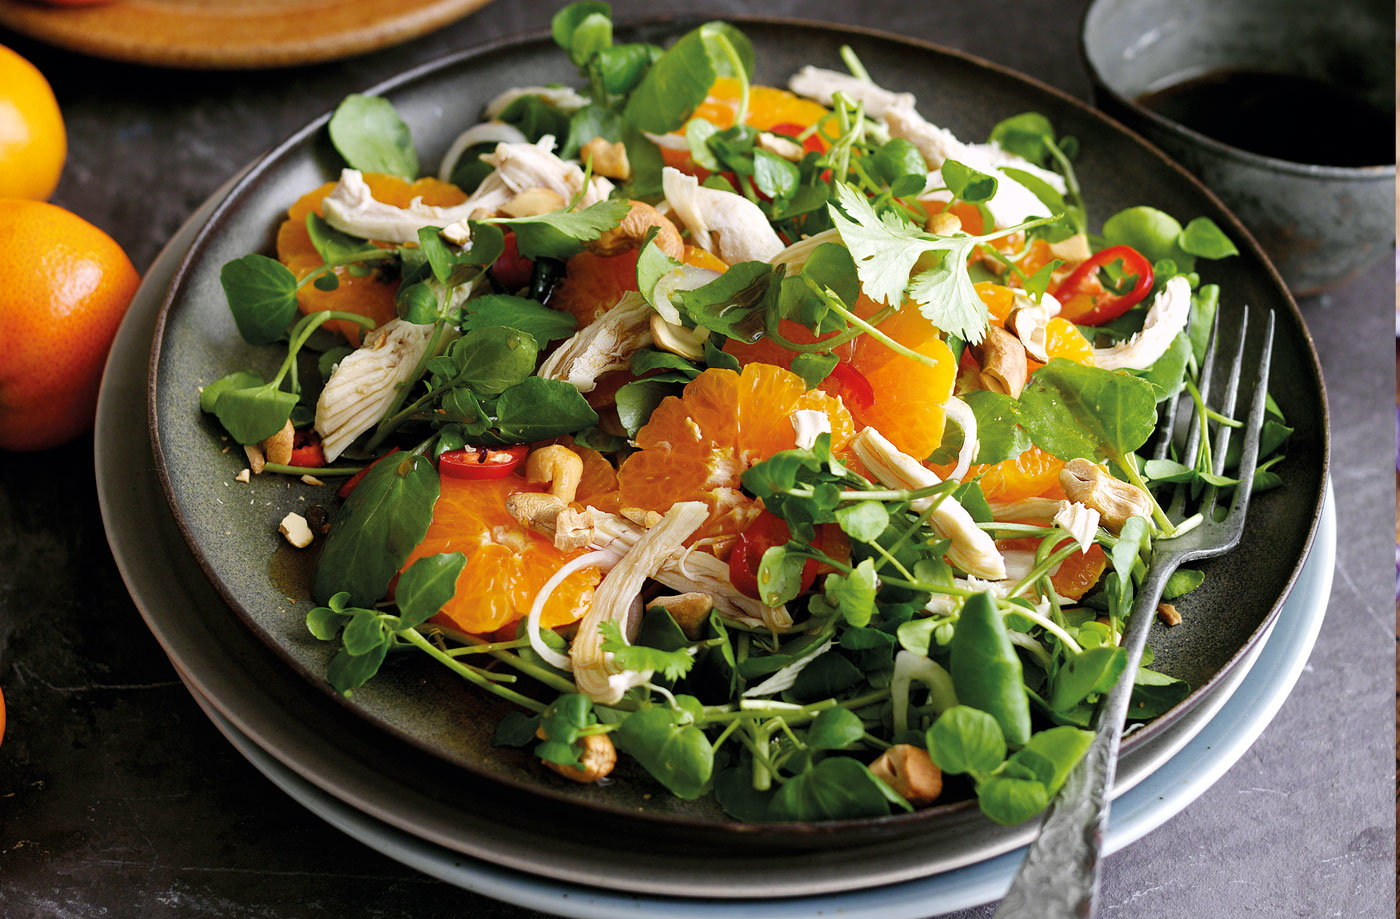 Shredded chicken and clementine salad with sweet soy dressing recipe